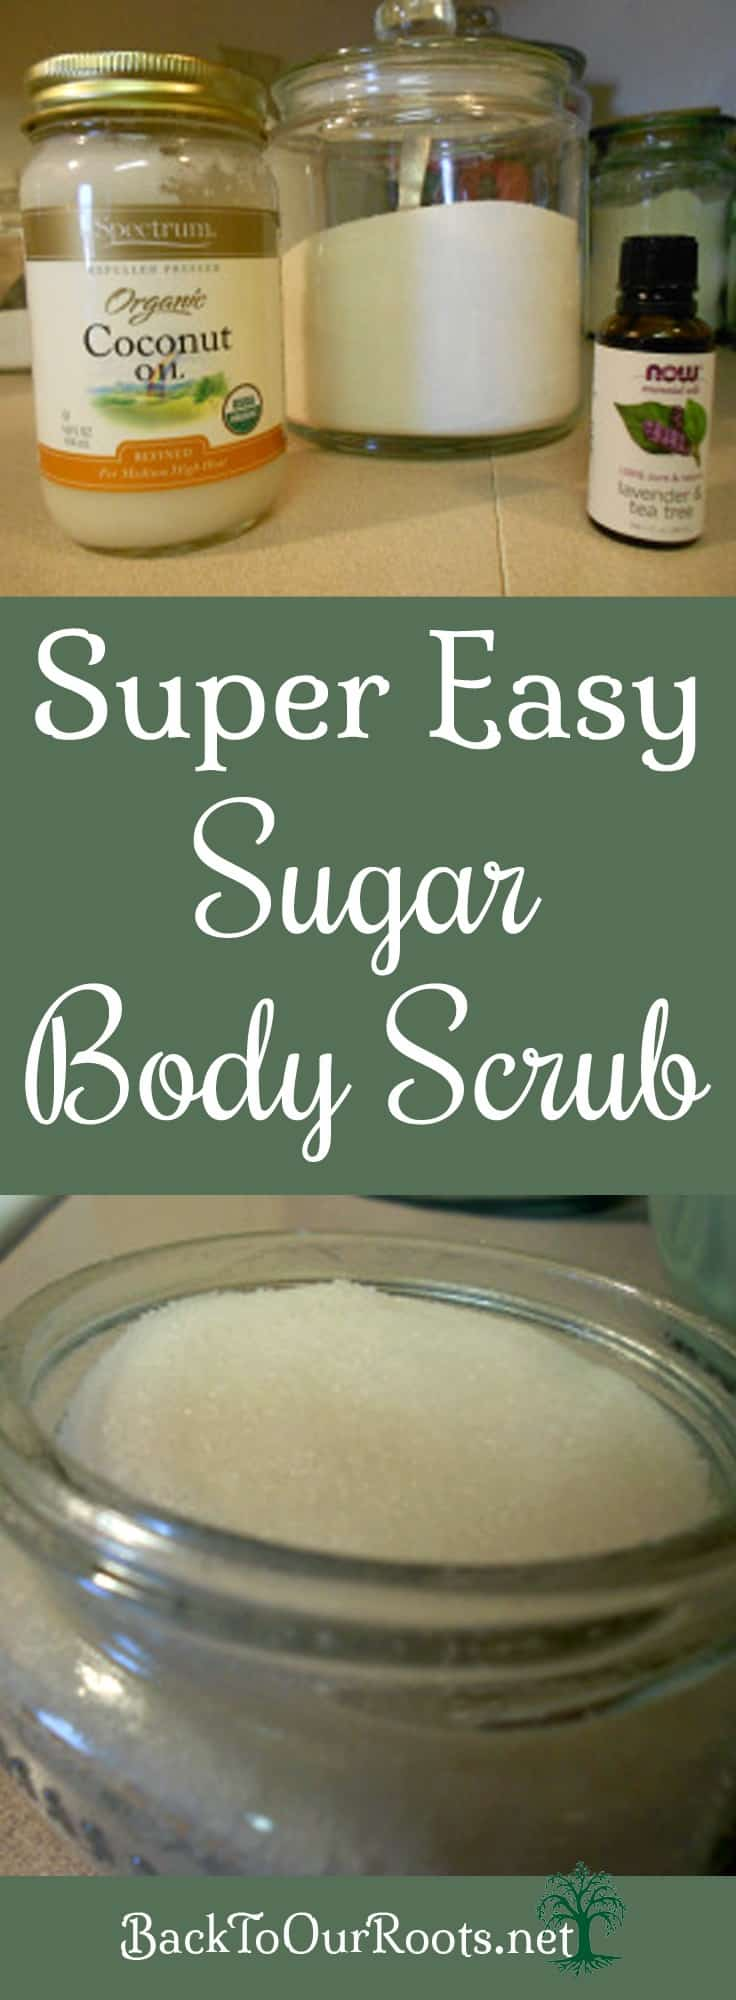 Super Easy Sugar Body Scrub